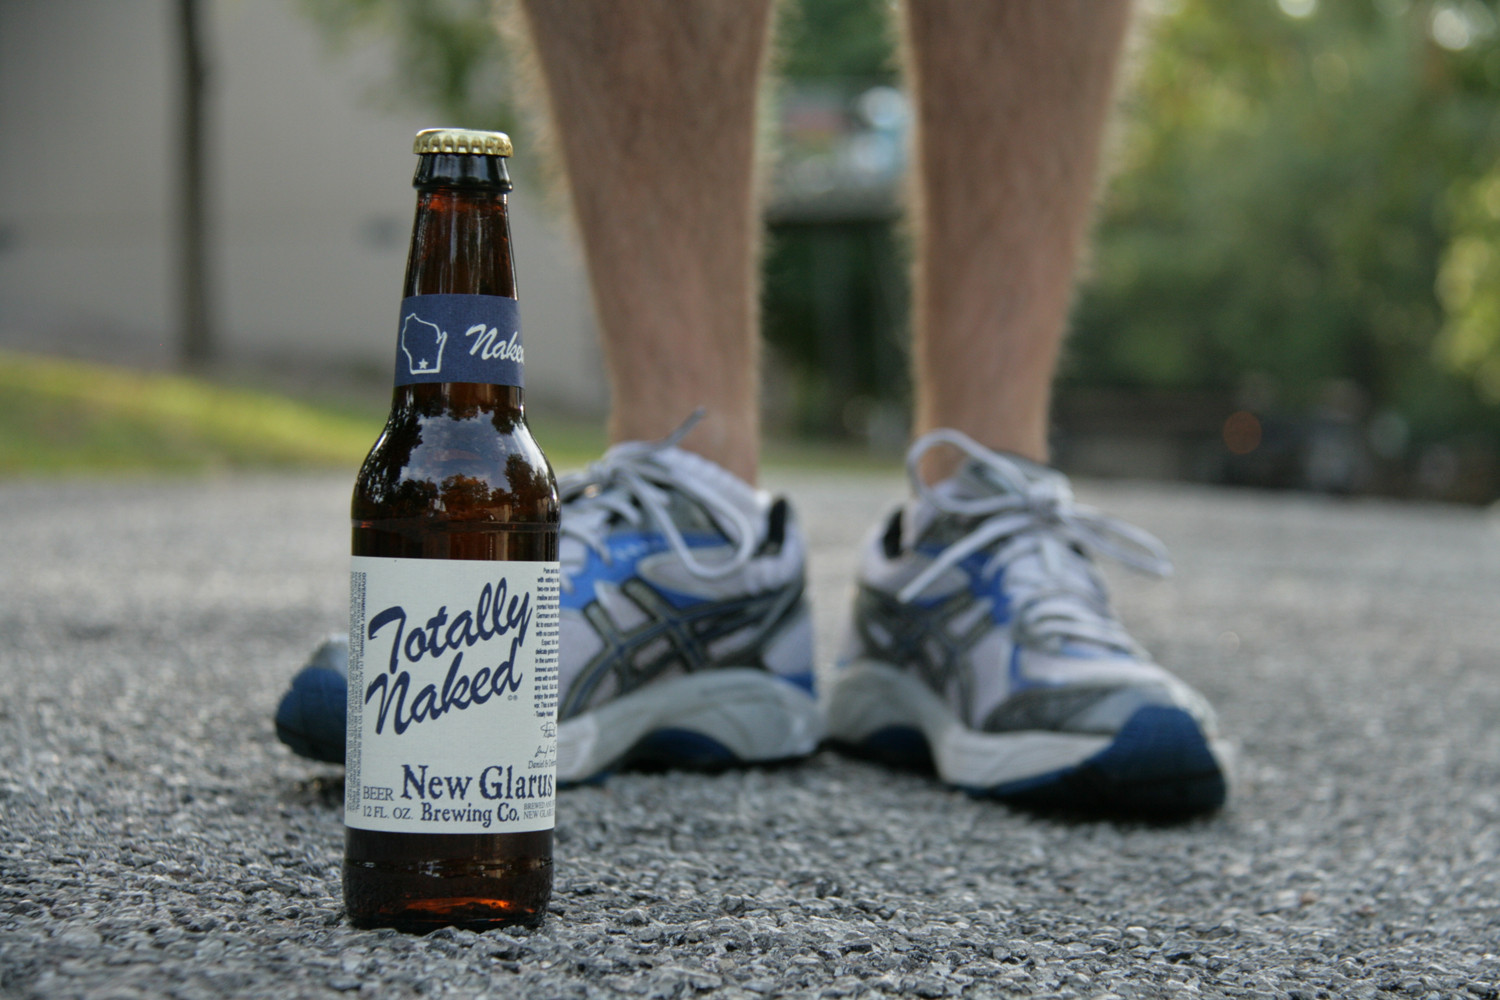 Get Totally Naked summer beer for after a long run.